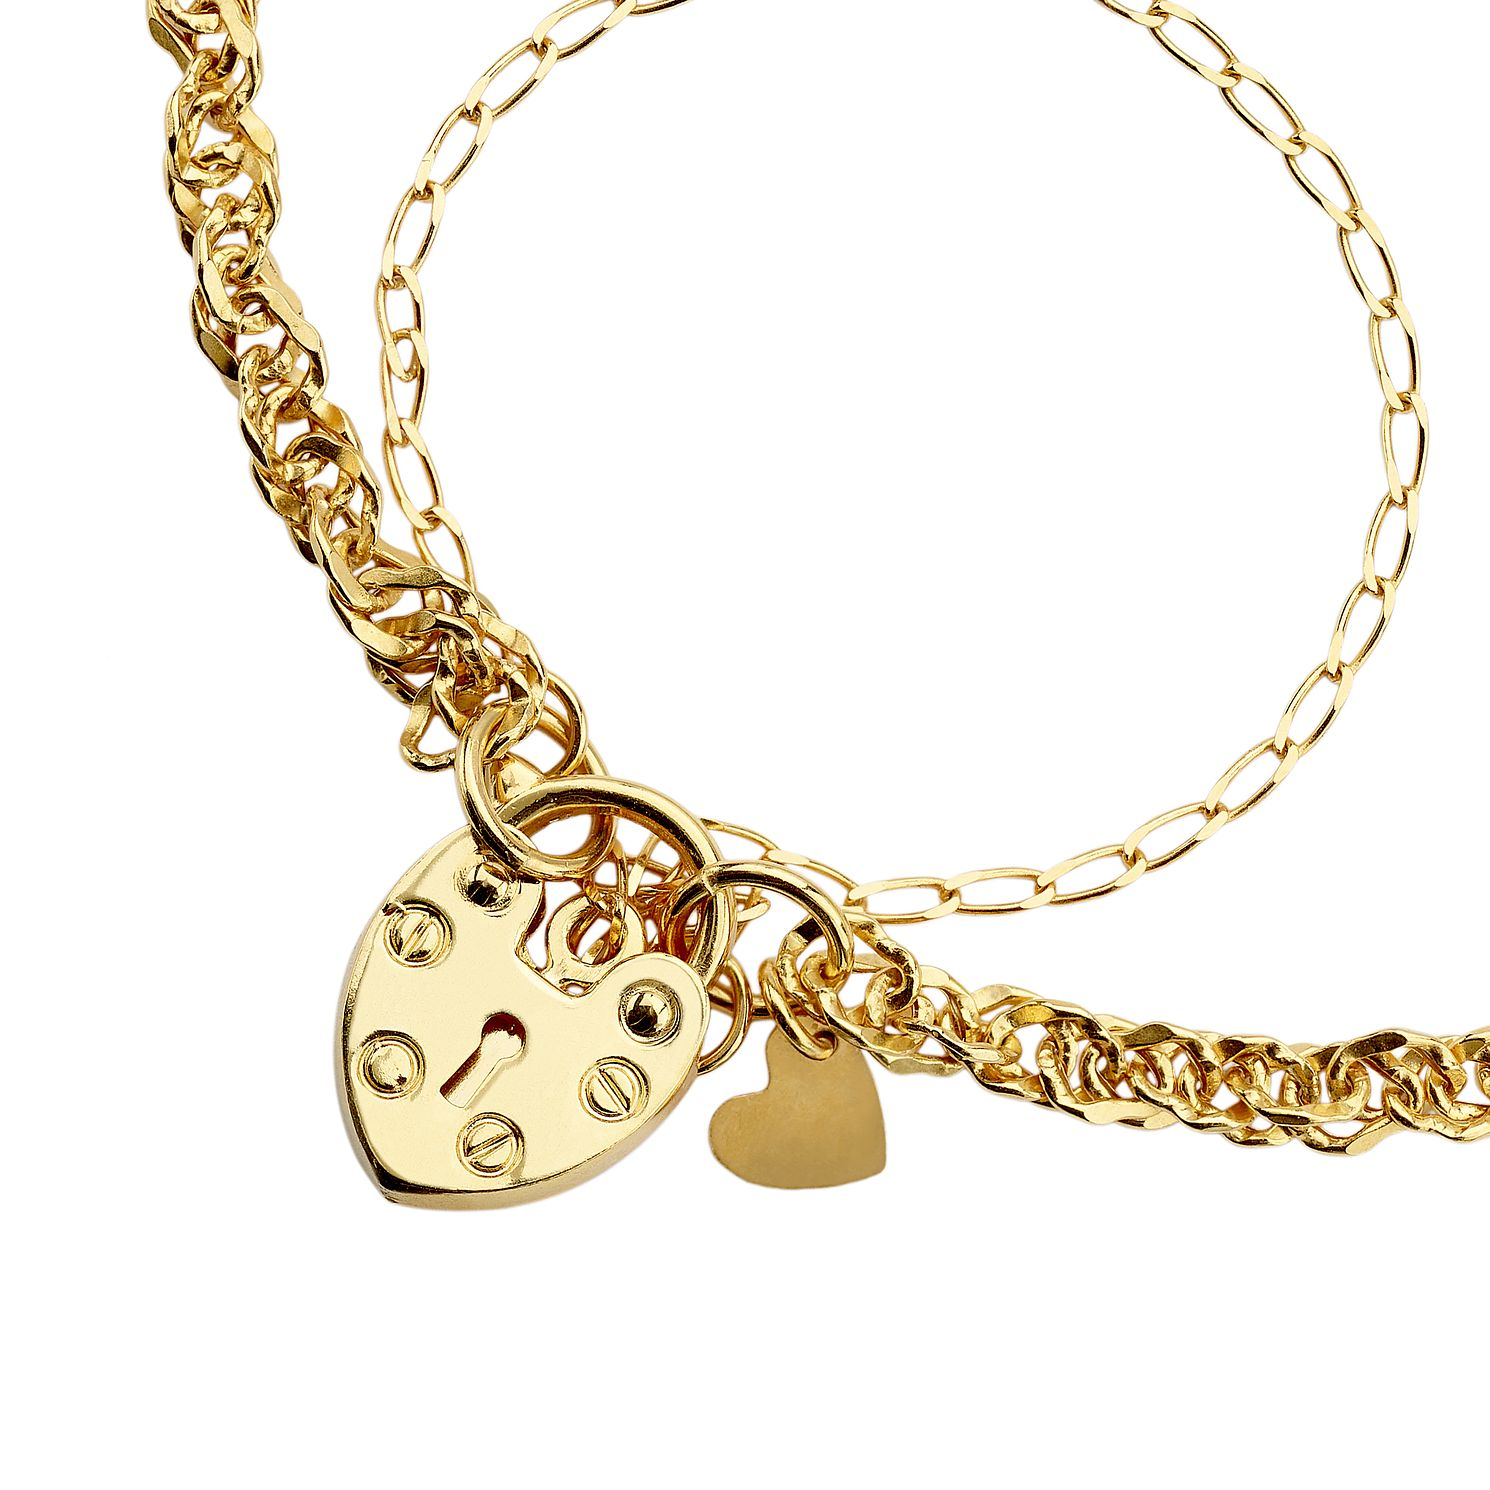 9ct Gold Heart Padlock Charm Singapore Bracelet - Product number 6140386